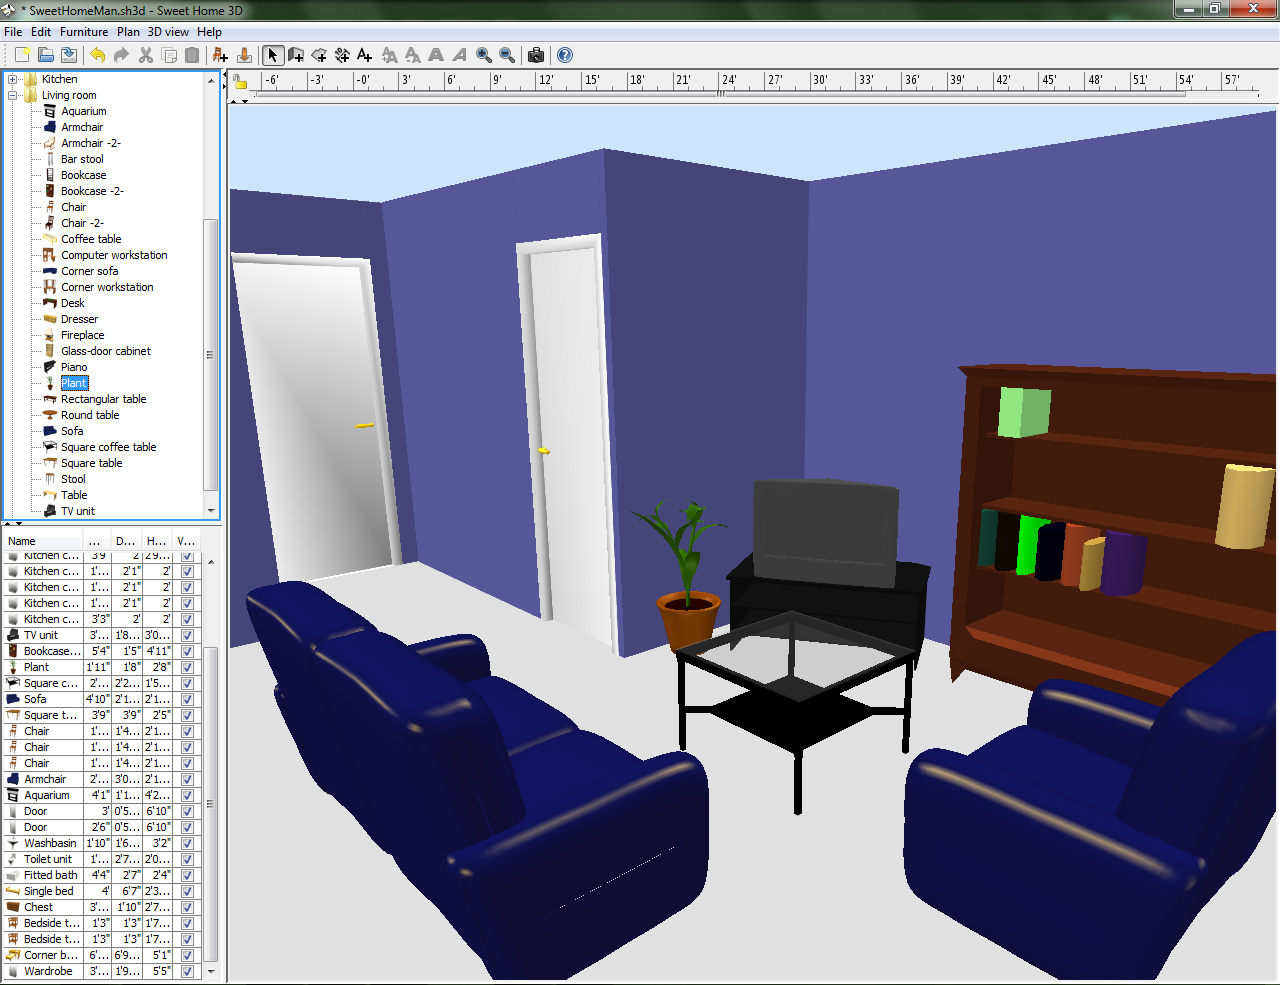 House interior design software - Home interior design software ...